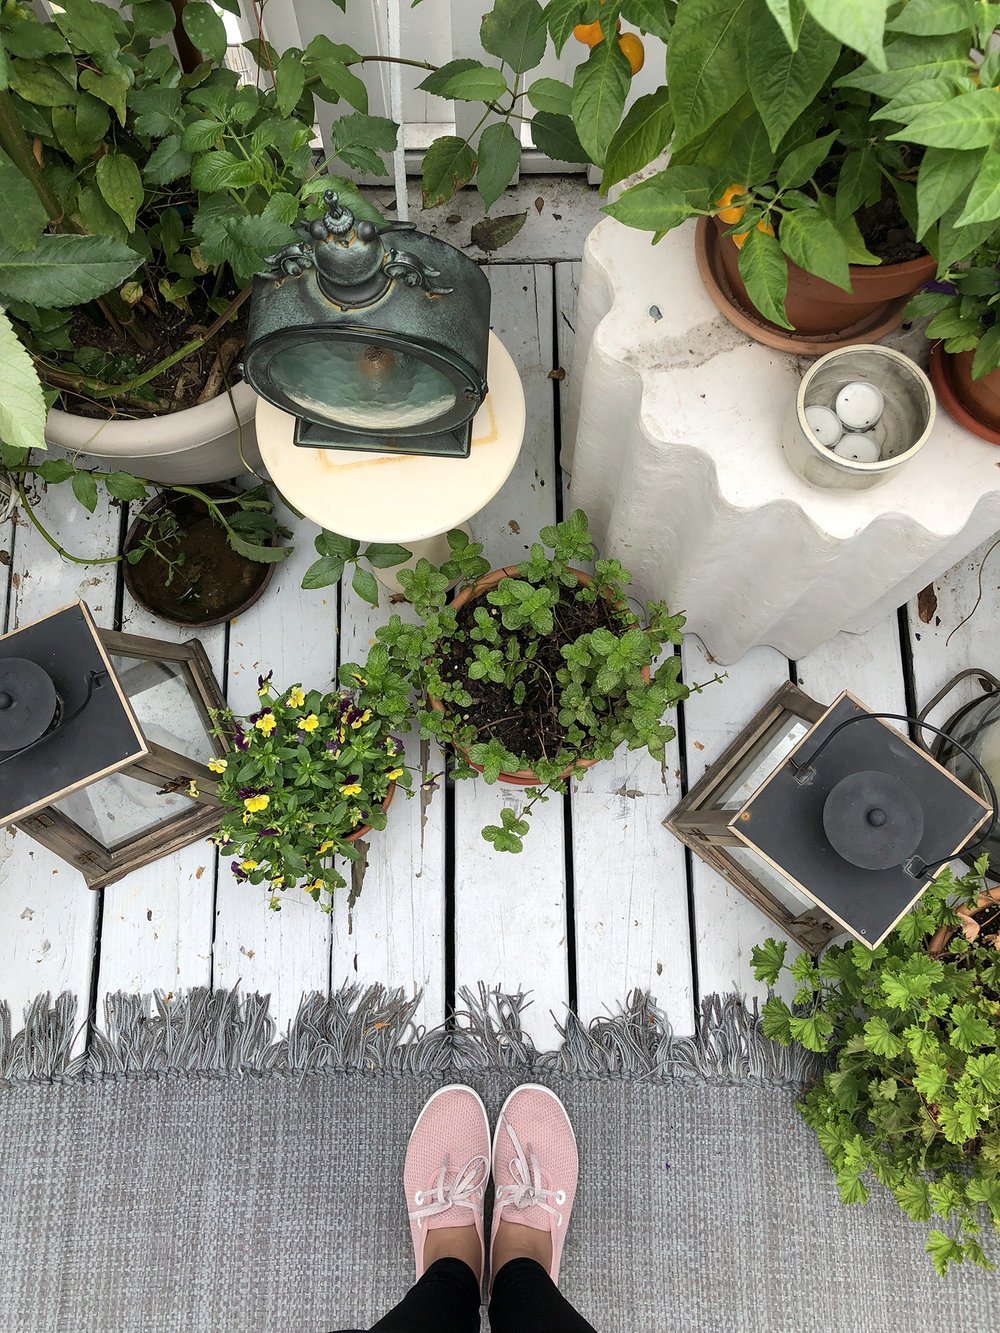 Katie's studio garden is a magical urban oasis